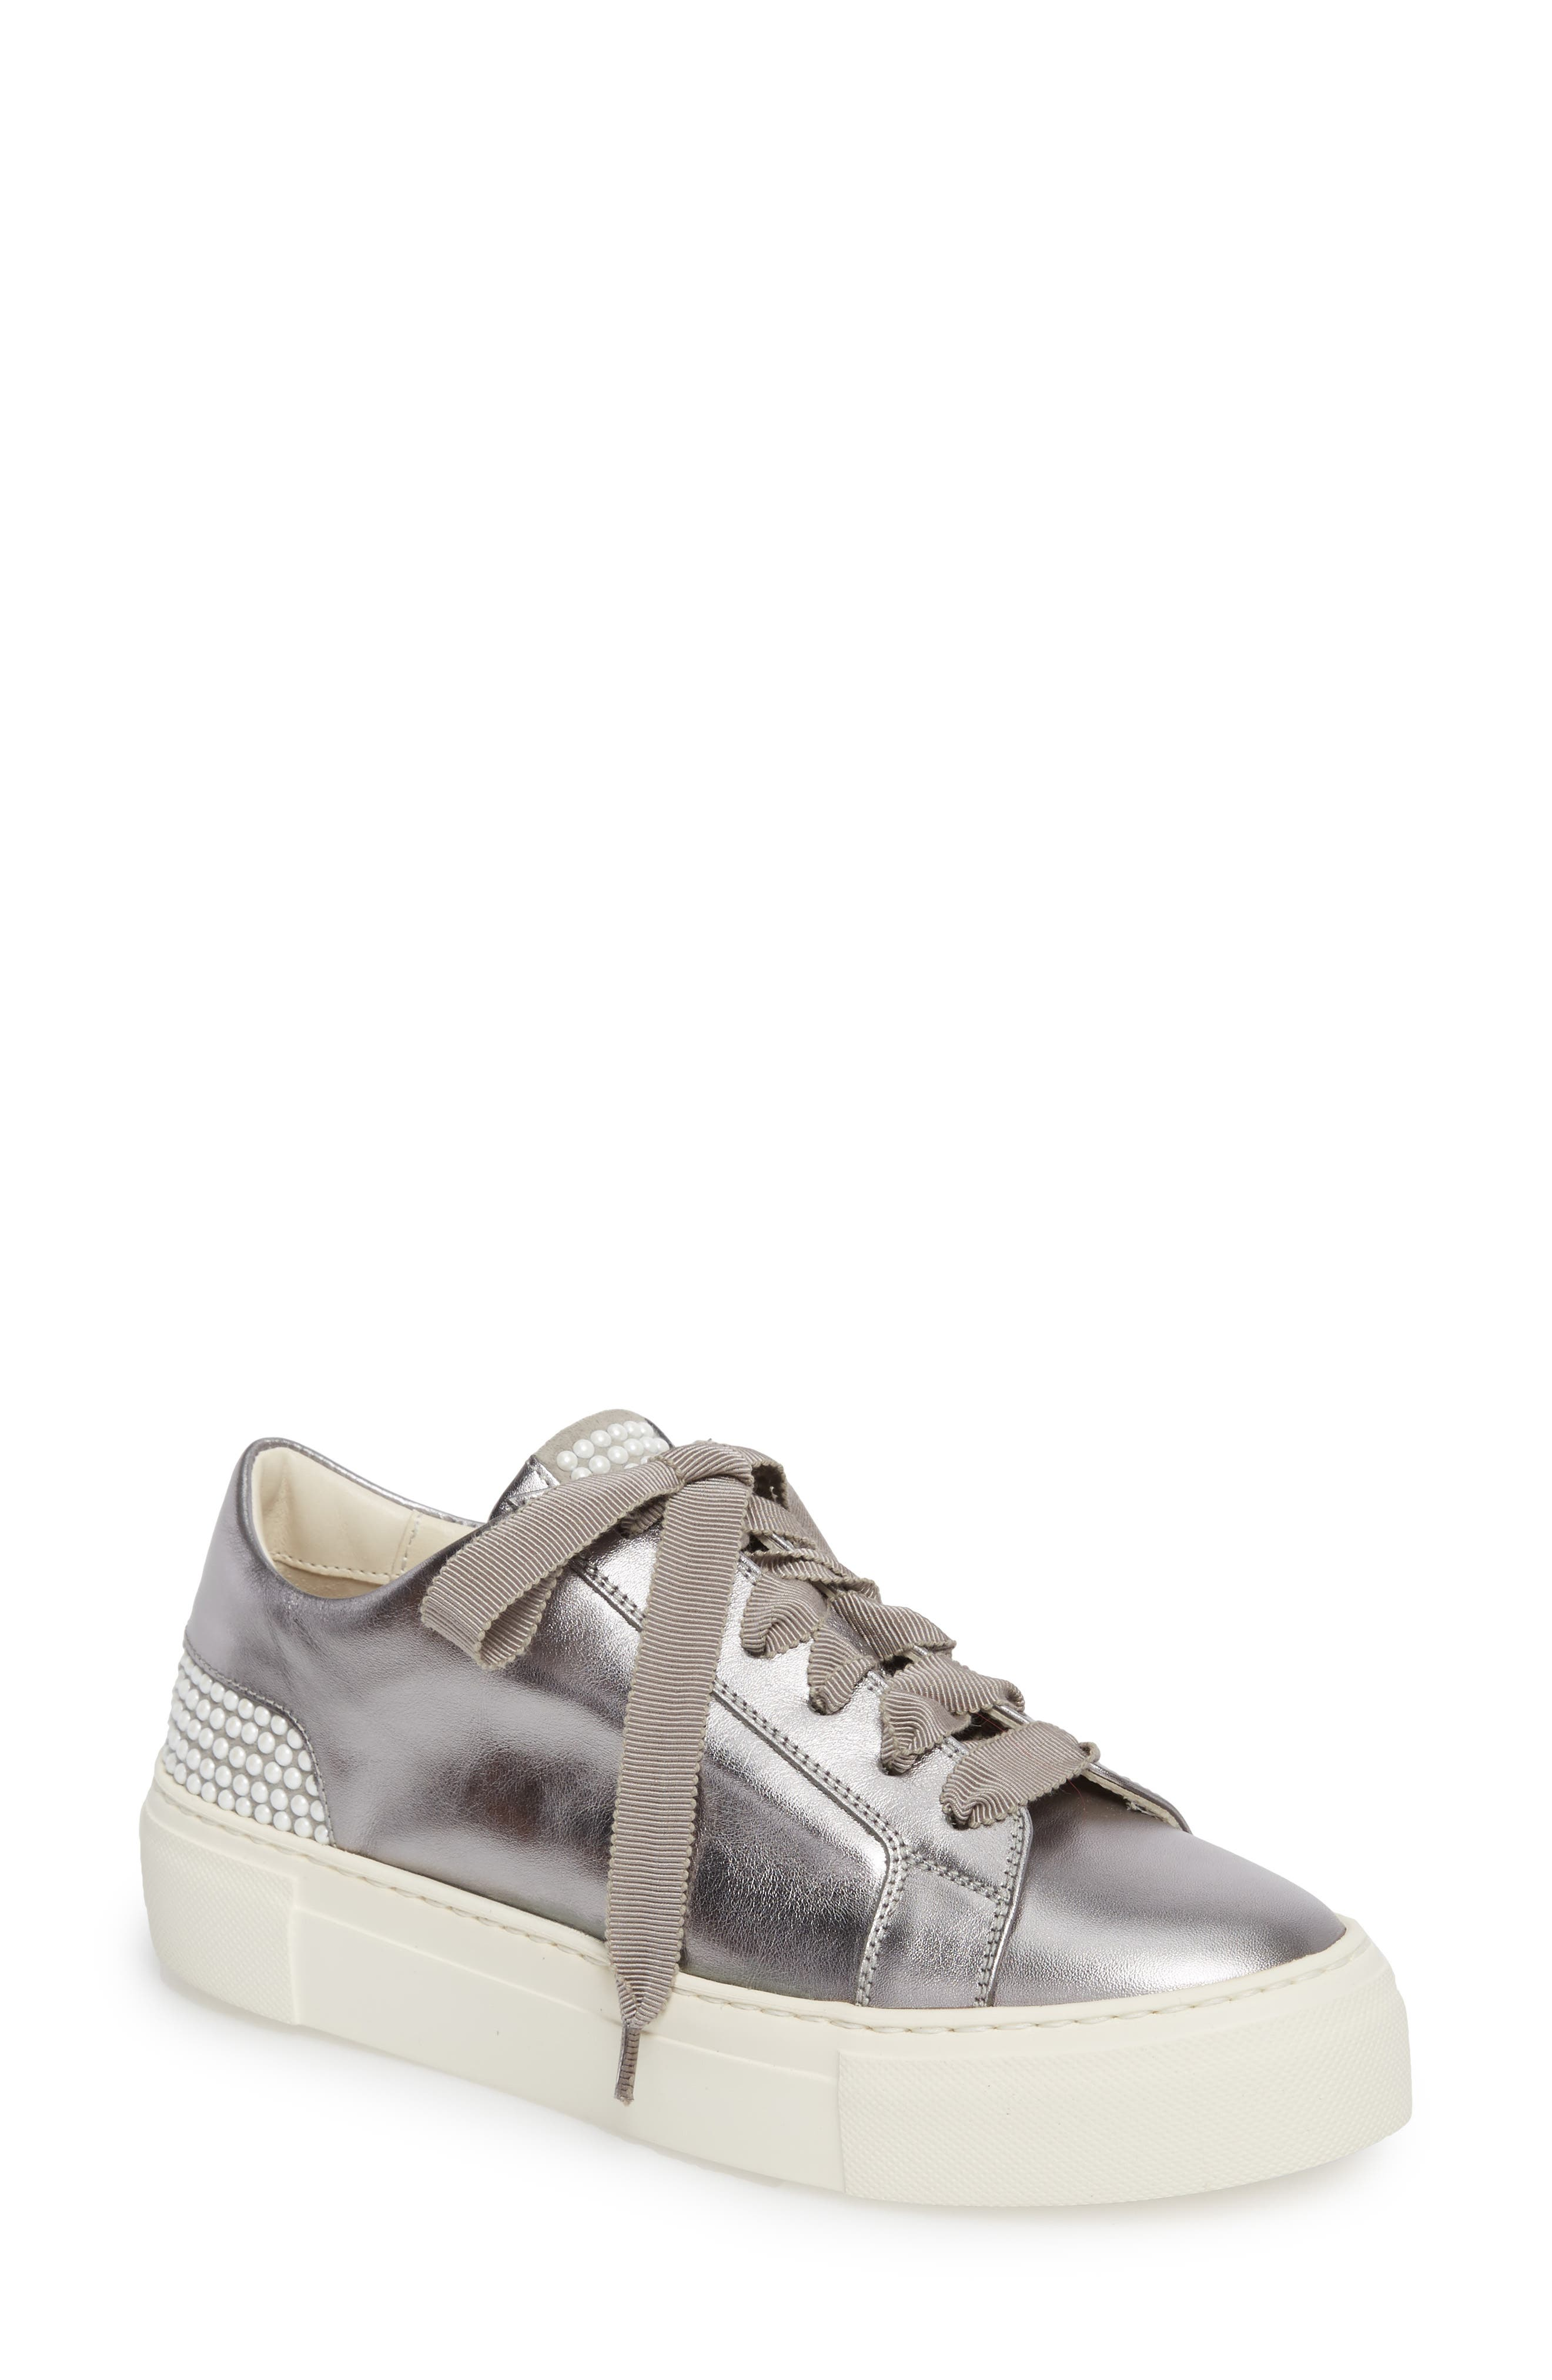 Alternate Image 1 Selected - AGL Pearl Sneaker (Women)